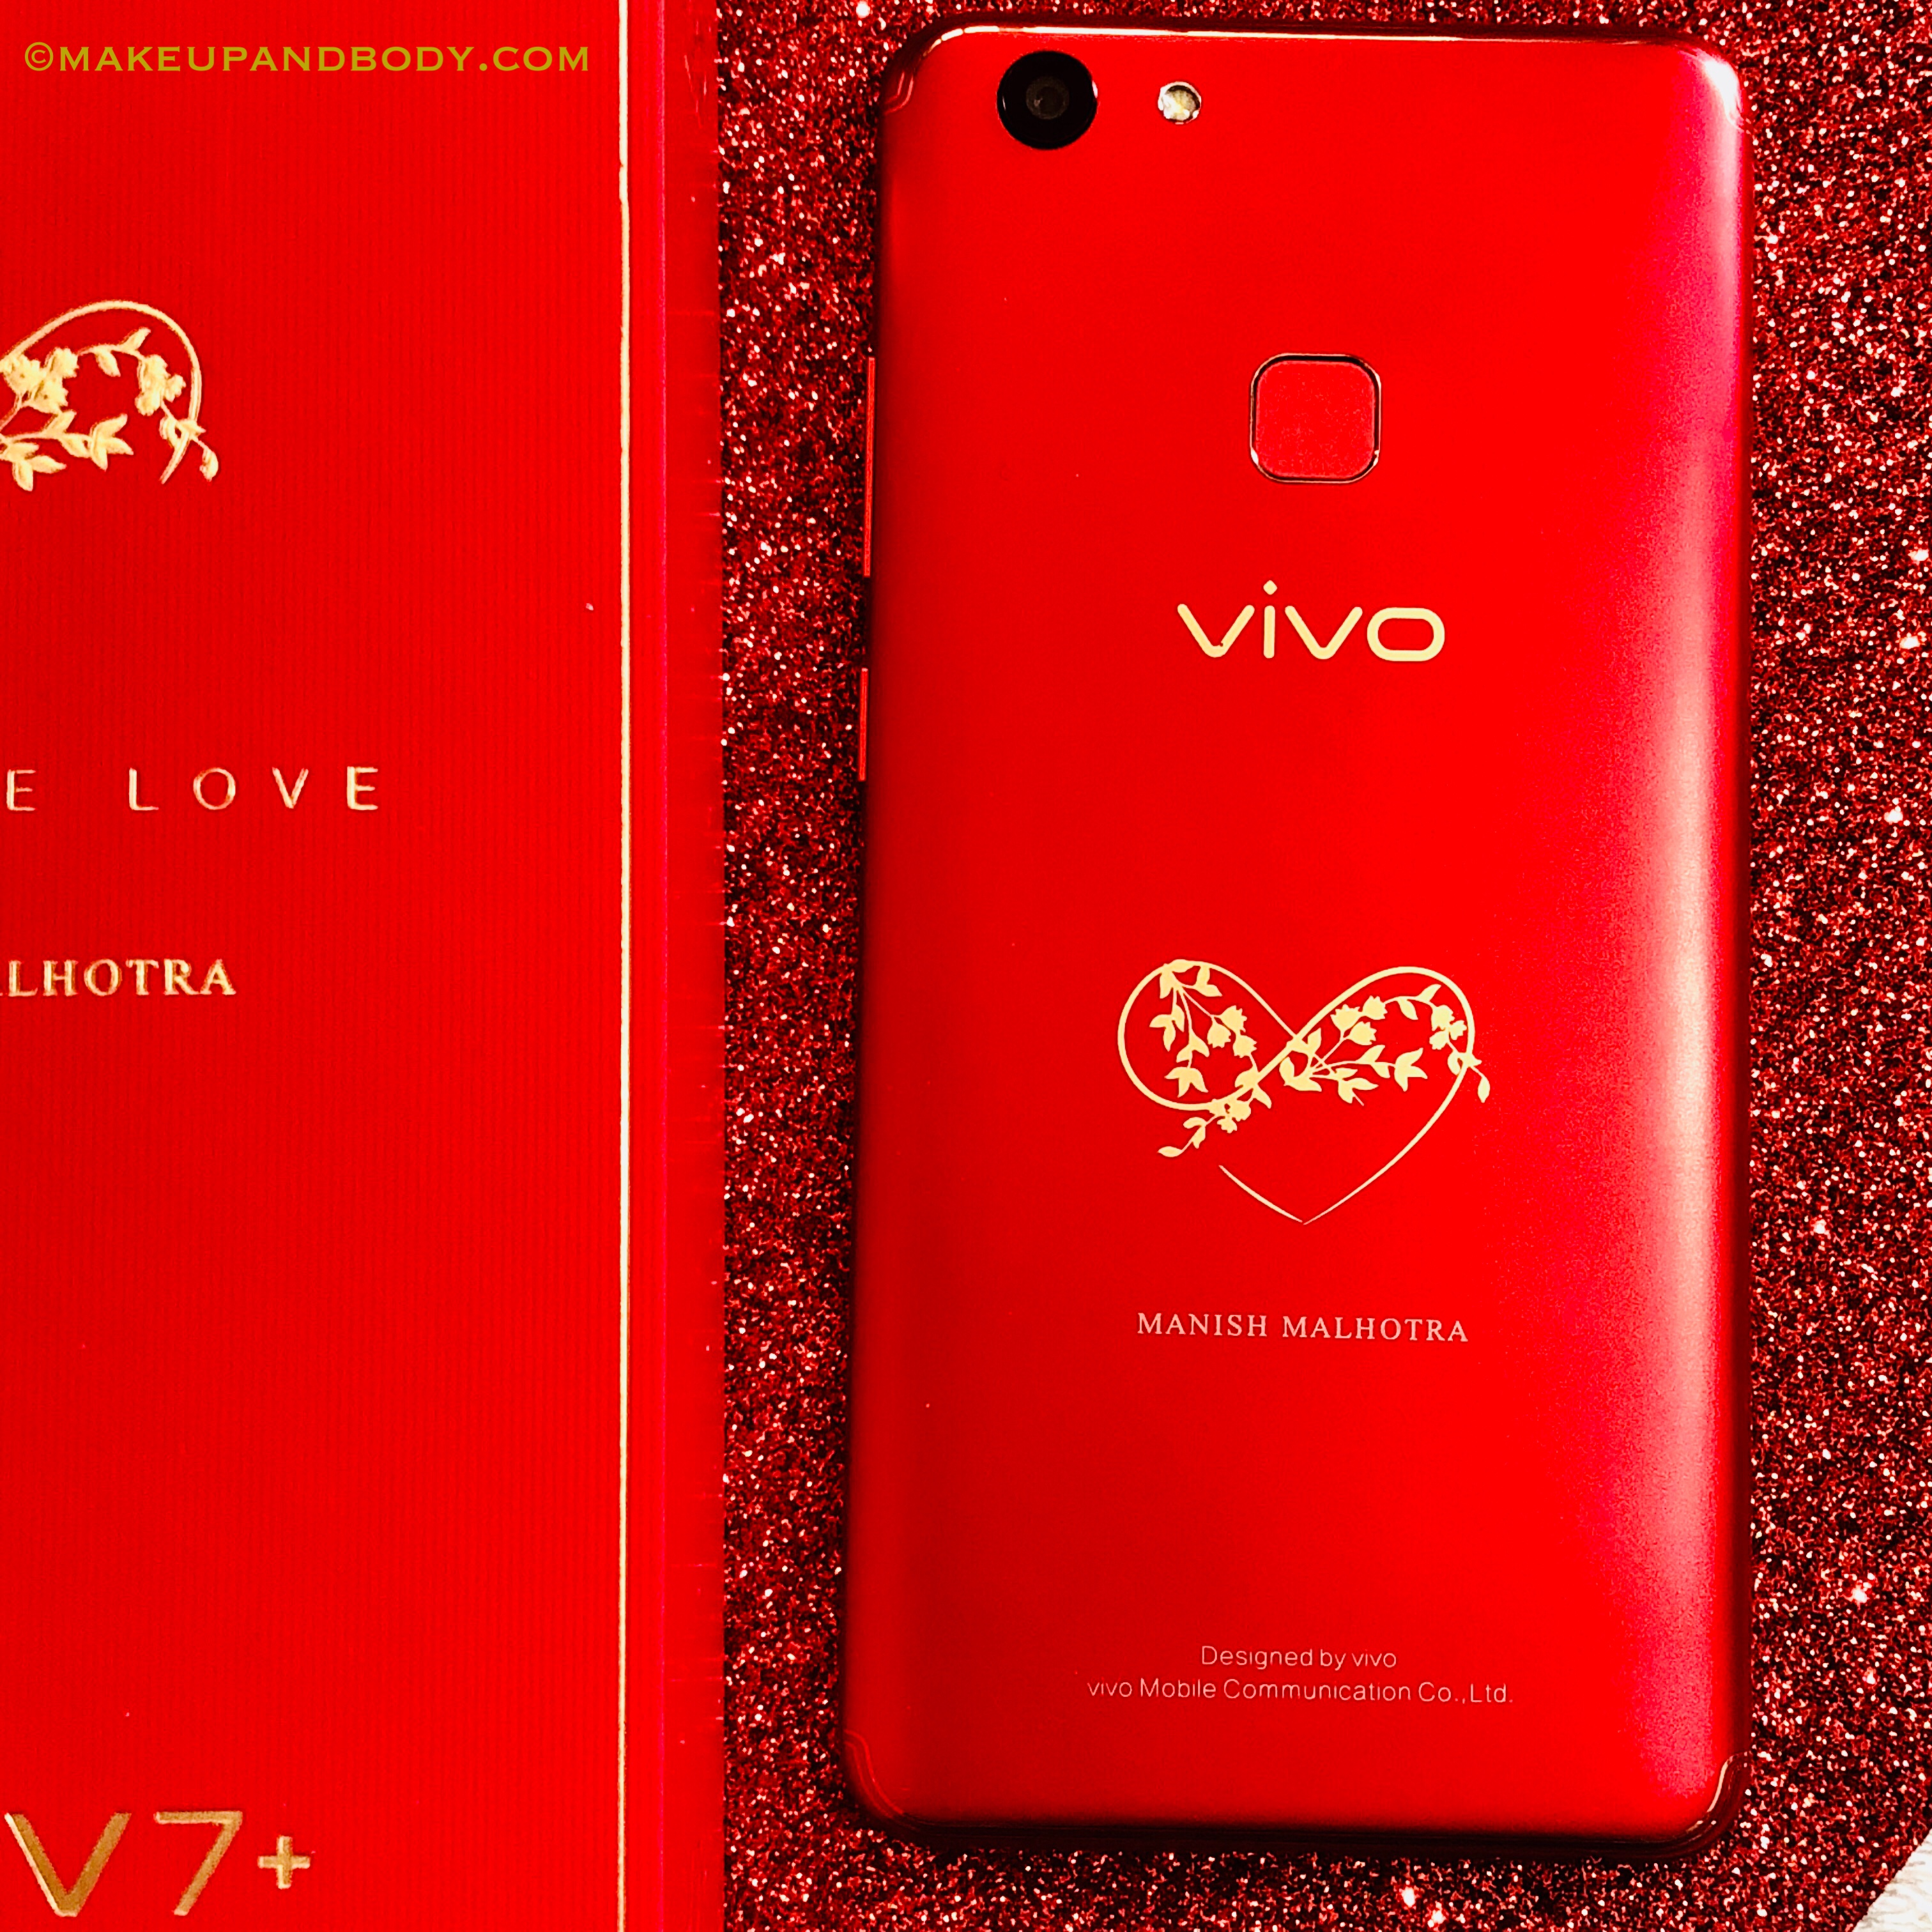 VIVO launches Vivo V7+ Infinite Red Limited Edition in collaboration with Manish Malhotra